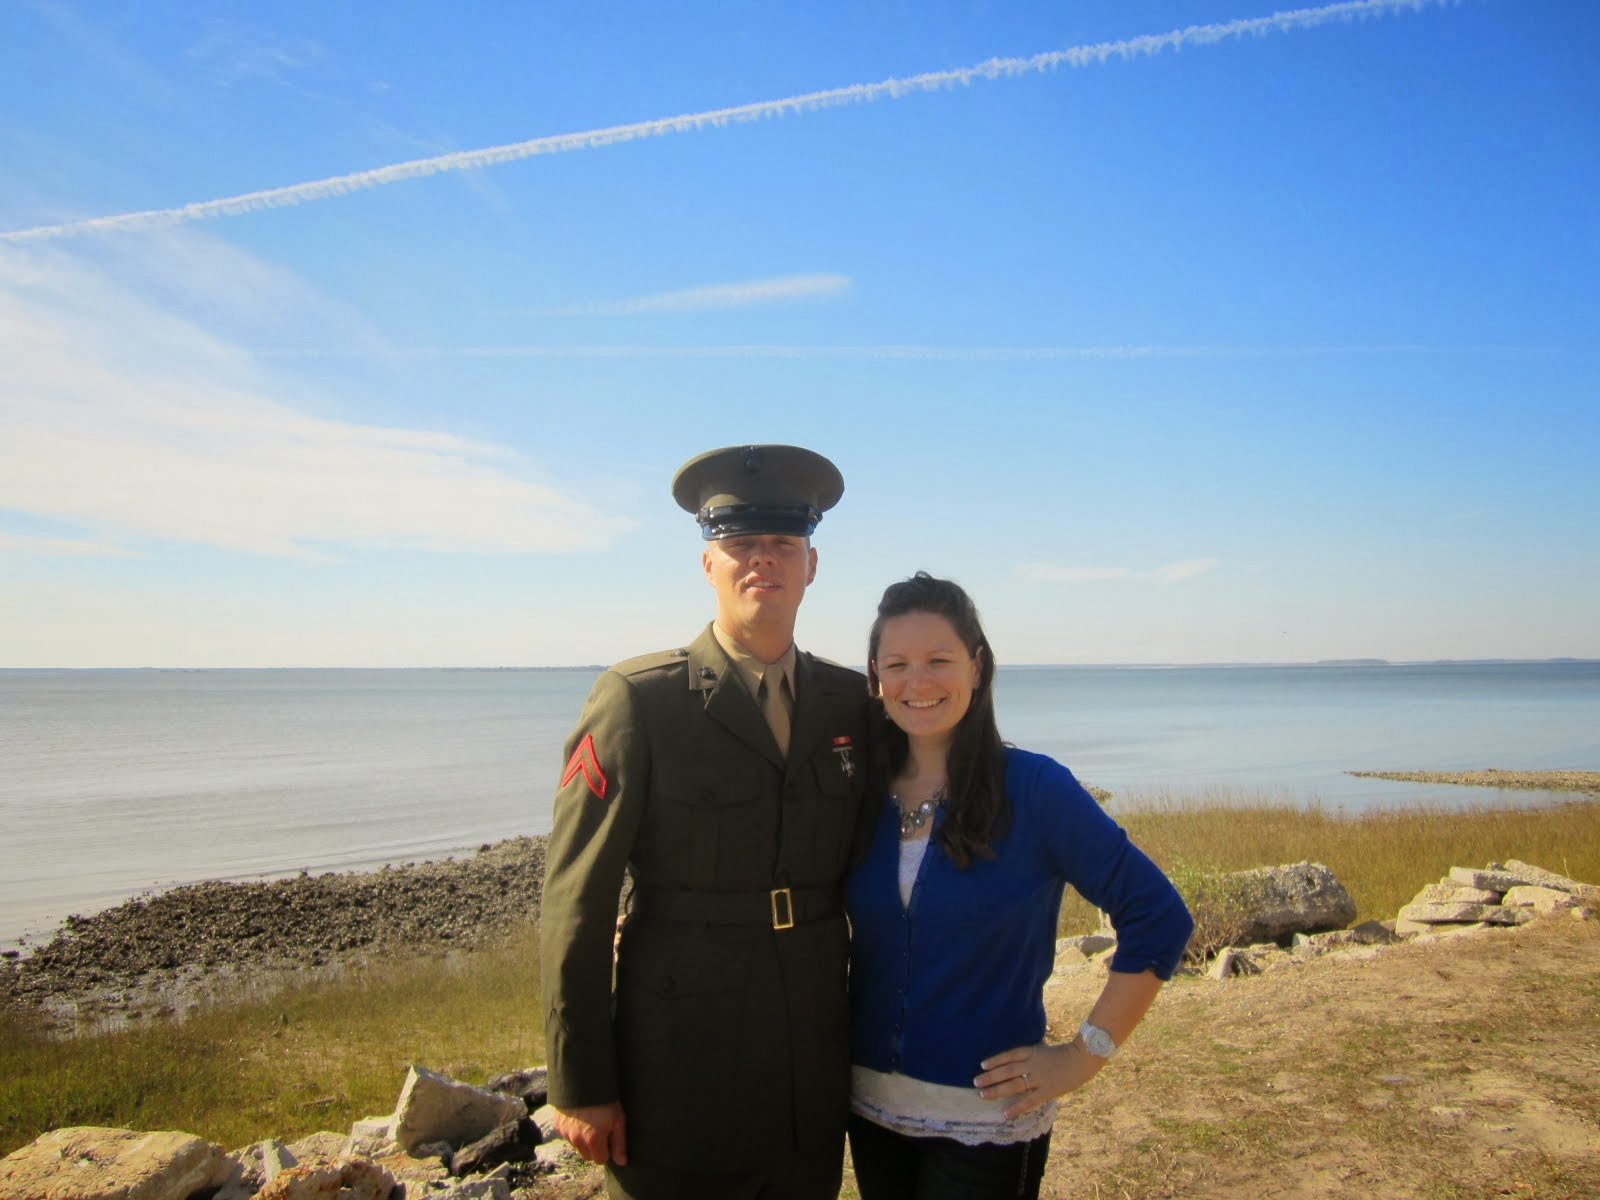 Me and My Marine!